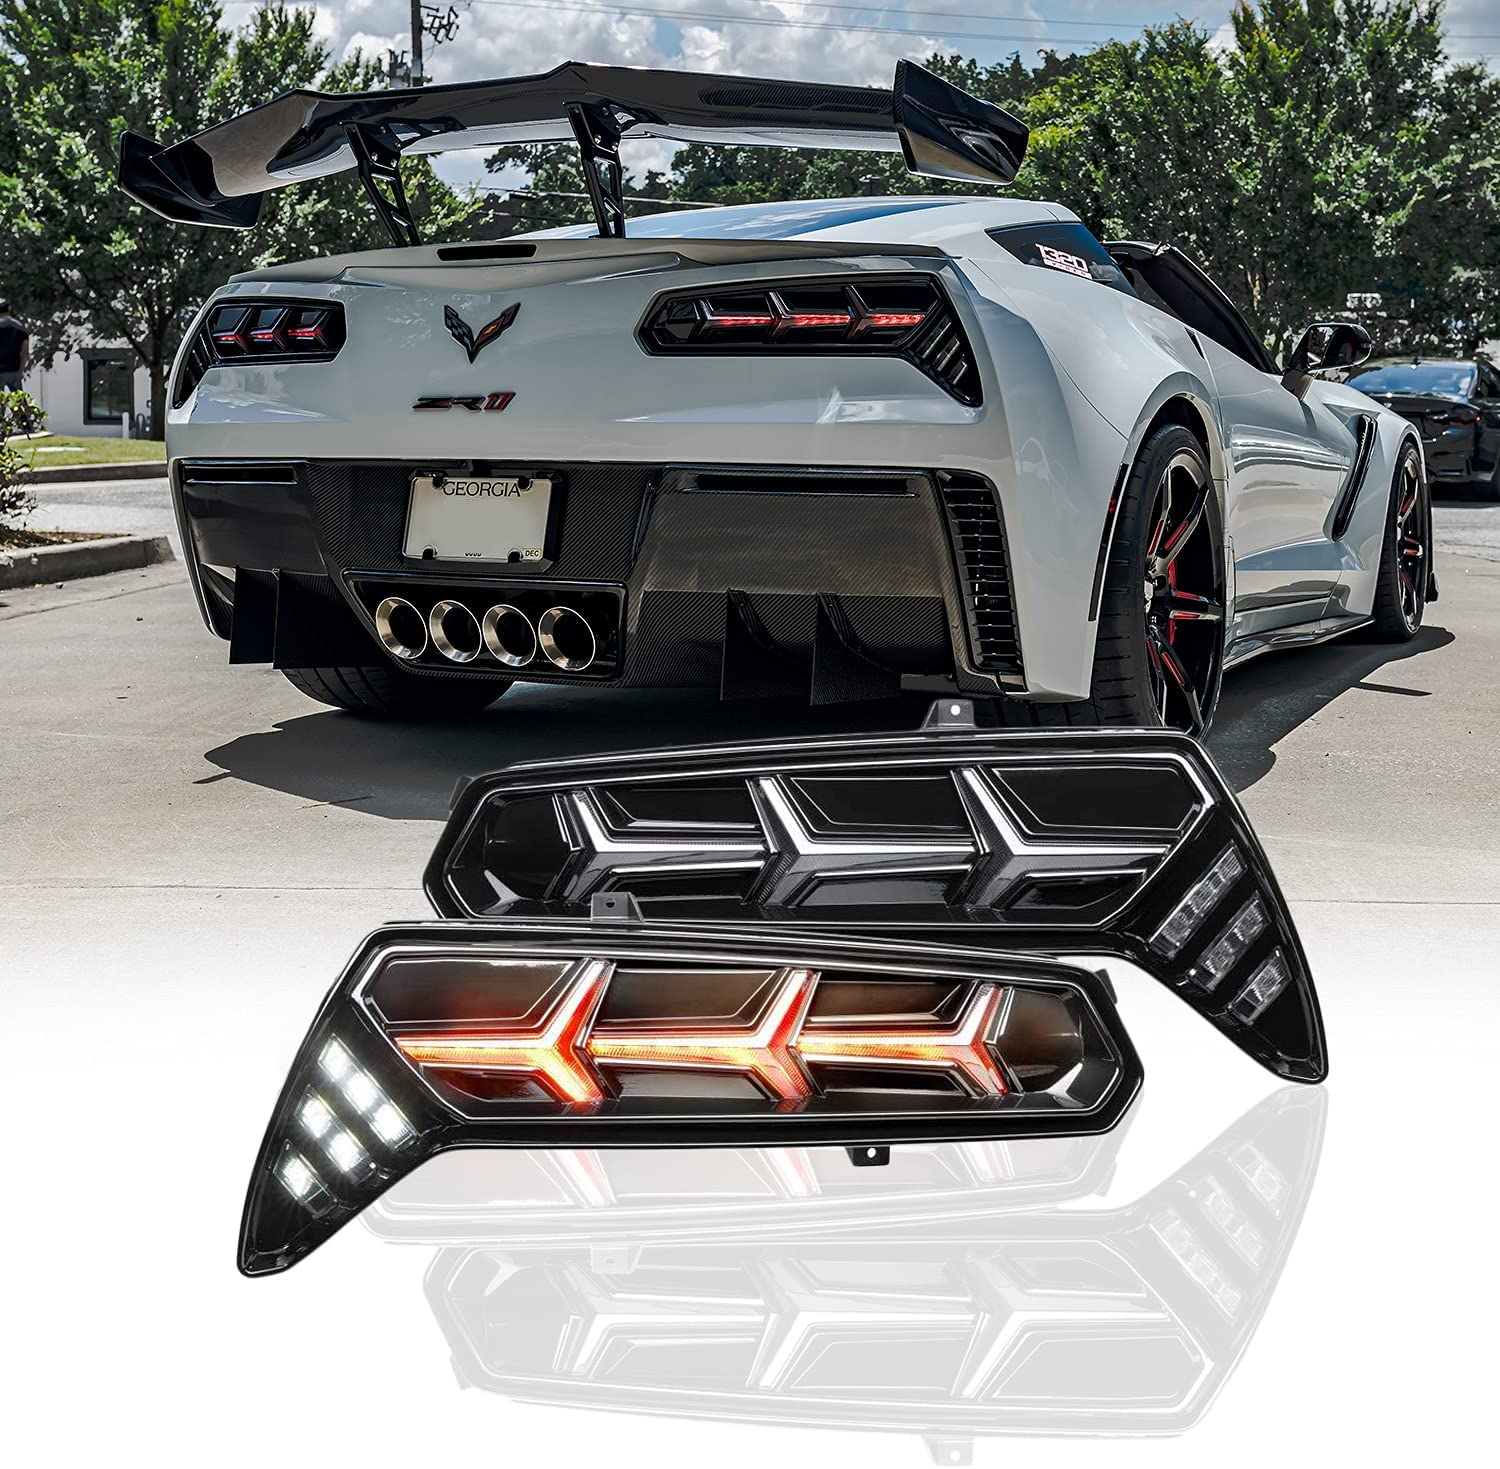 Morimoto XB LED Tail lights, Plug and Play Housing Upgrade, fits 2014-2019 Chevrolet Corvette C7, DOT Approved Assembly, LED Sequential Turn Signals, Brake, Reverse Lights, & Smoked Lens (1x LF464)